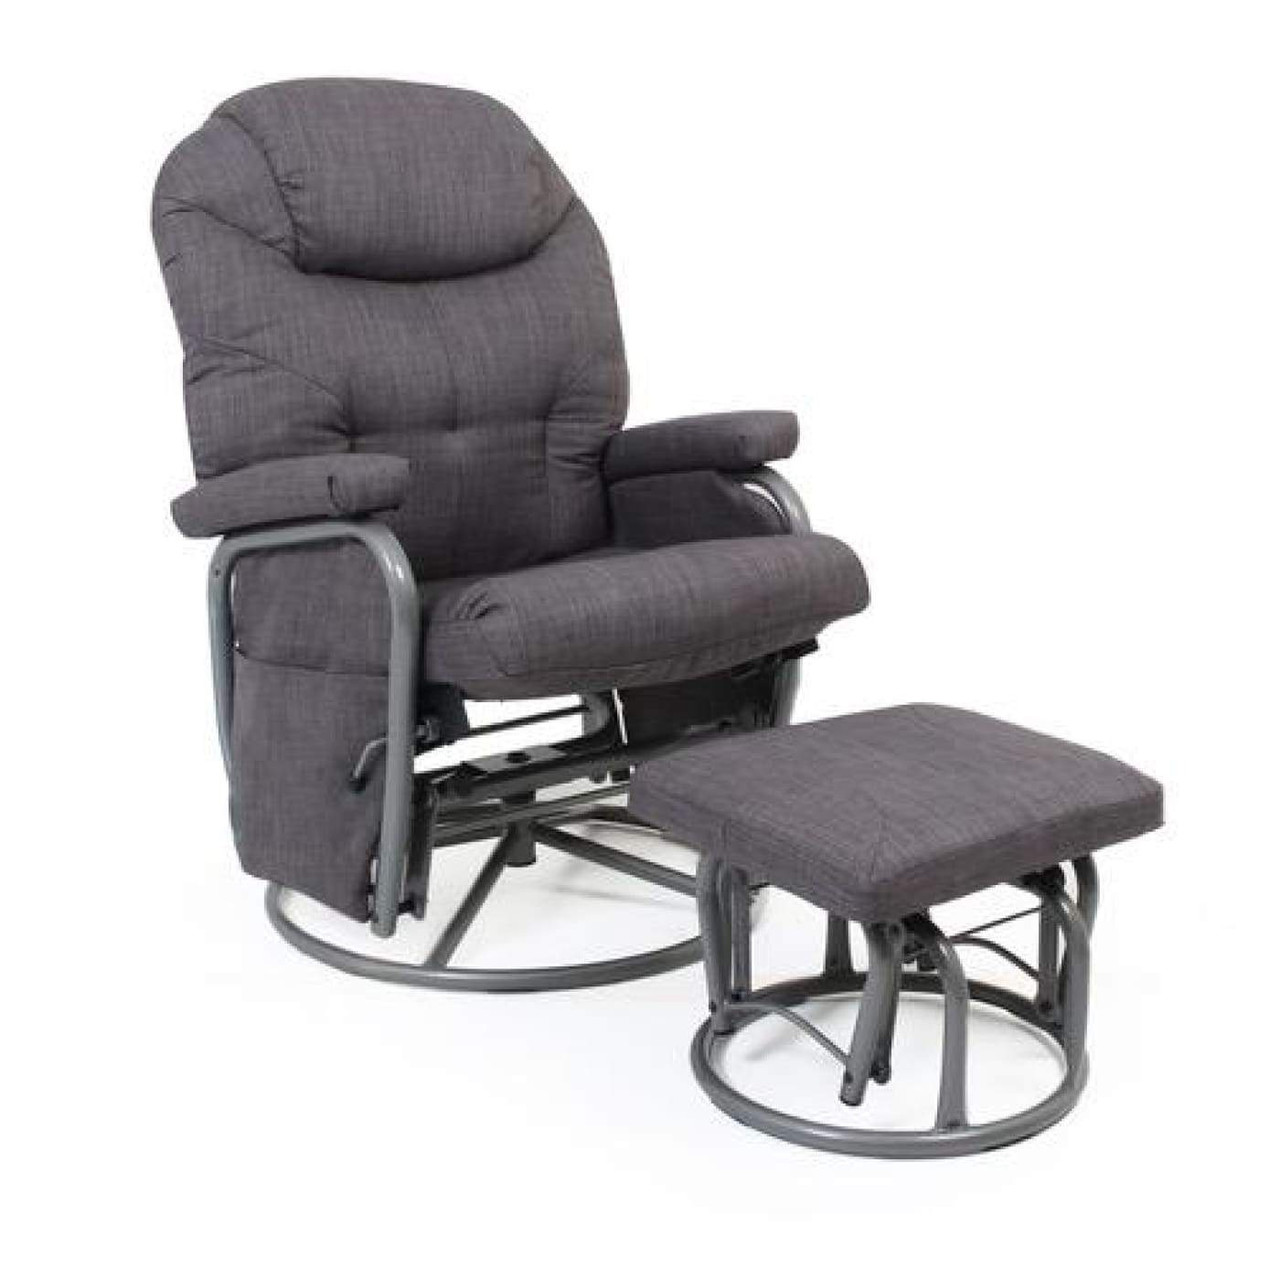 Valco Seville Glider Set Pepper Grey at Baby Barn Discounts The soothing gliding motion and comfortable padding will ensure you and your baby are in the most comfortable environment possible.